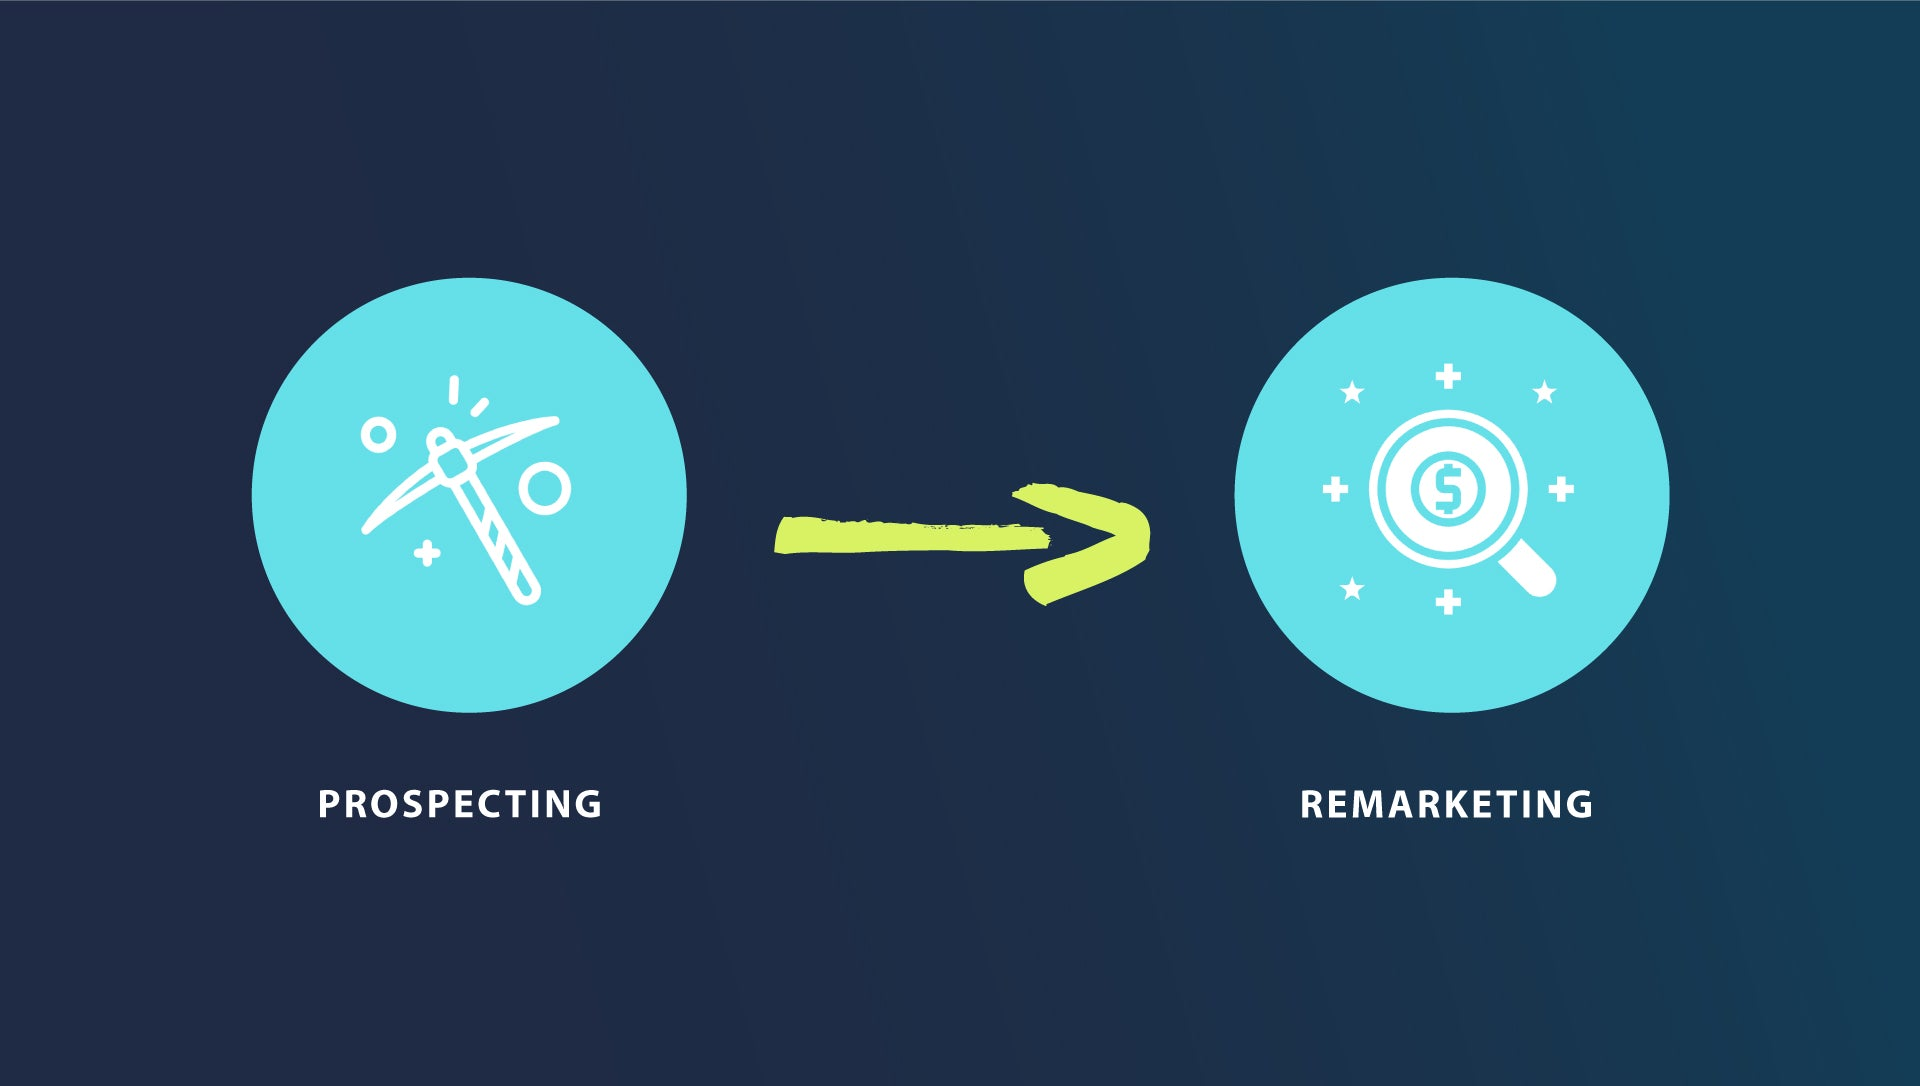 Prospecting and Remarketing